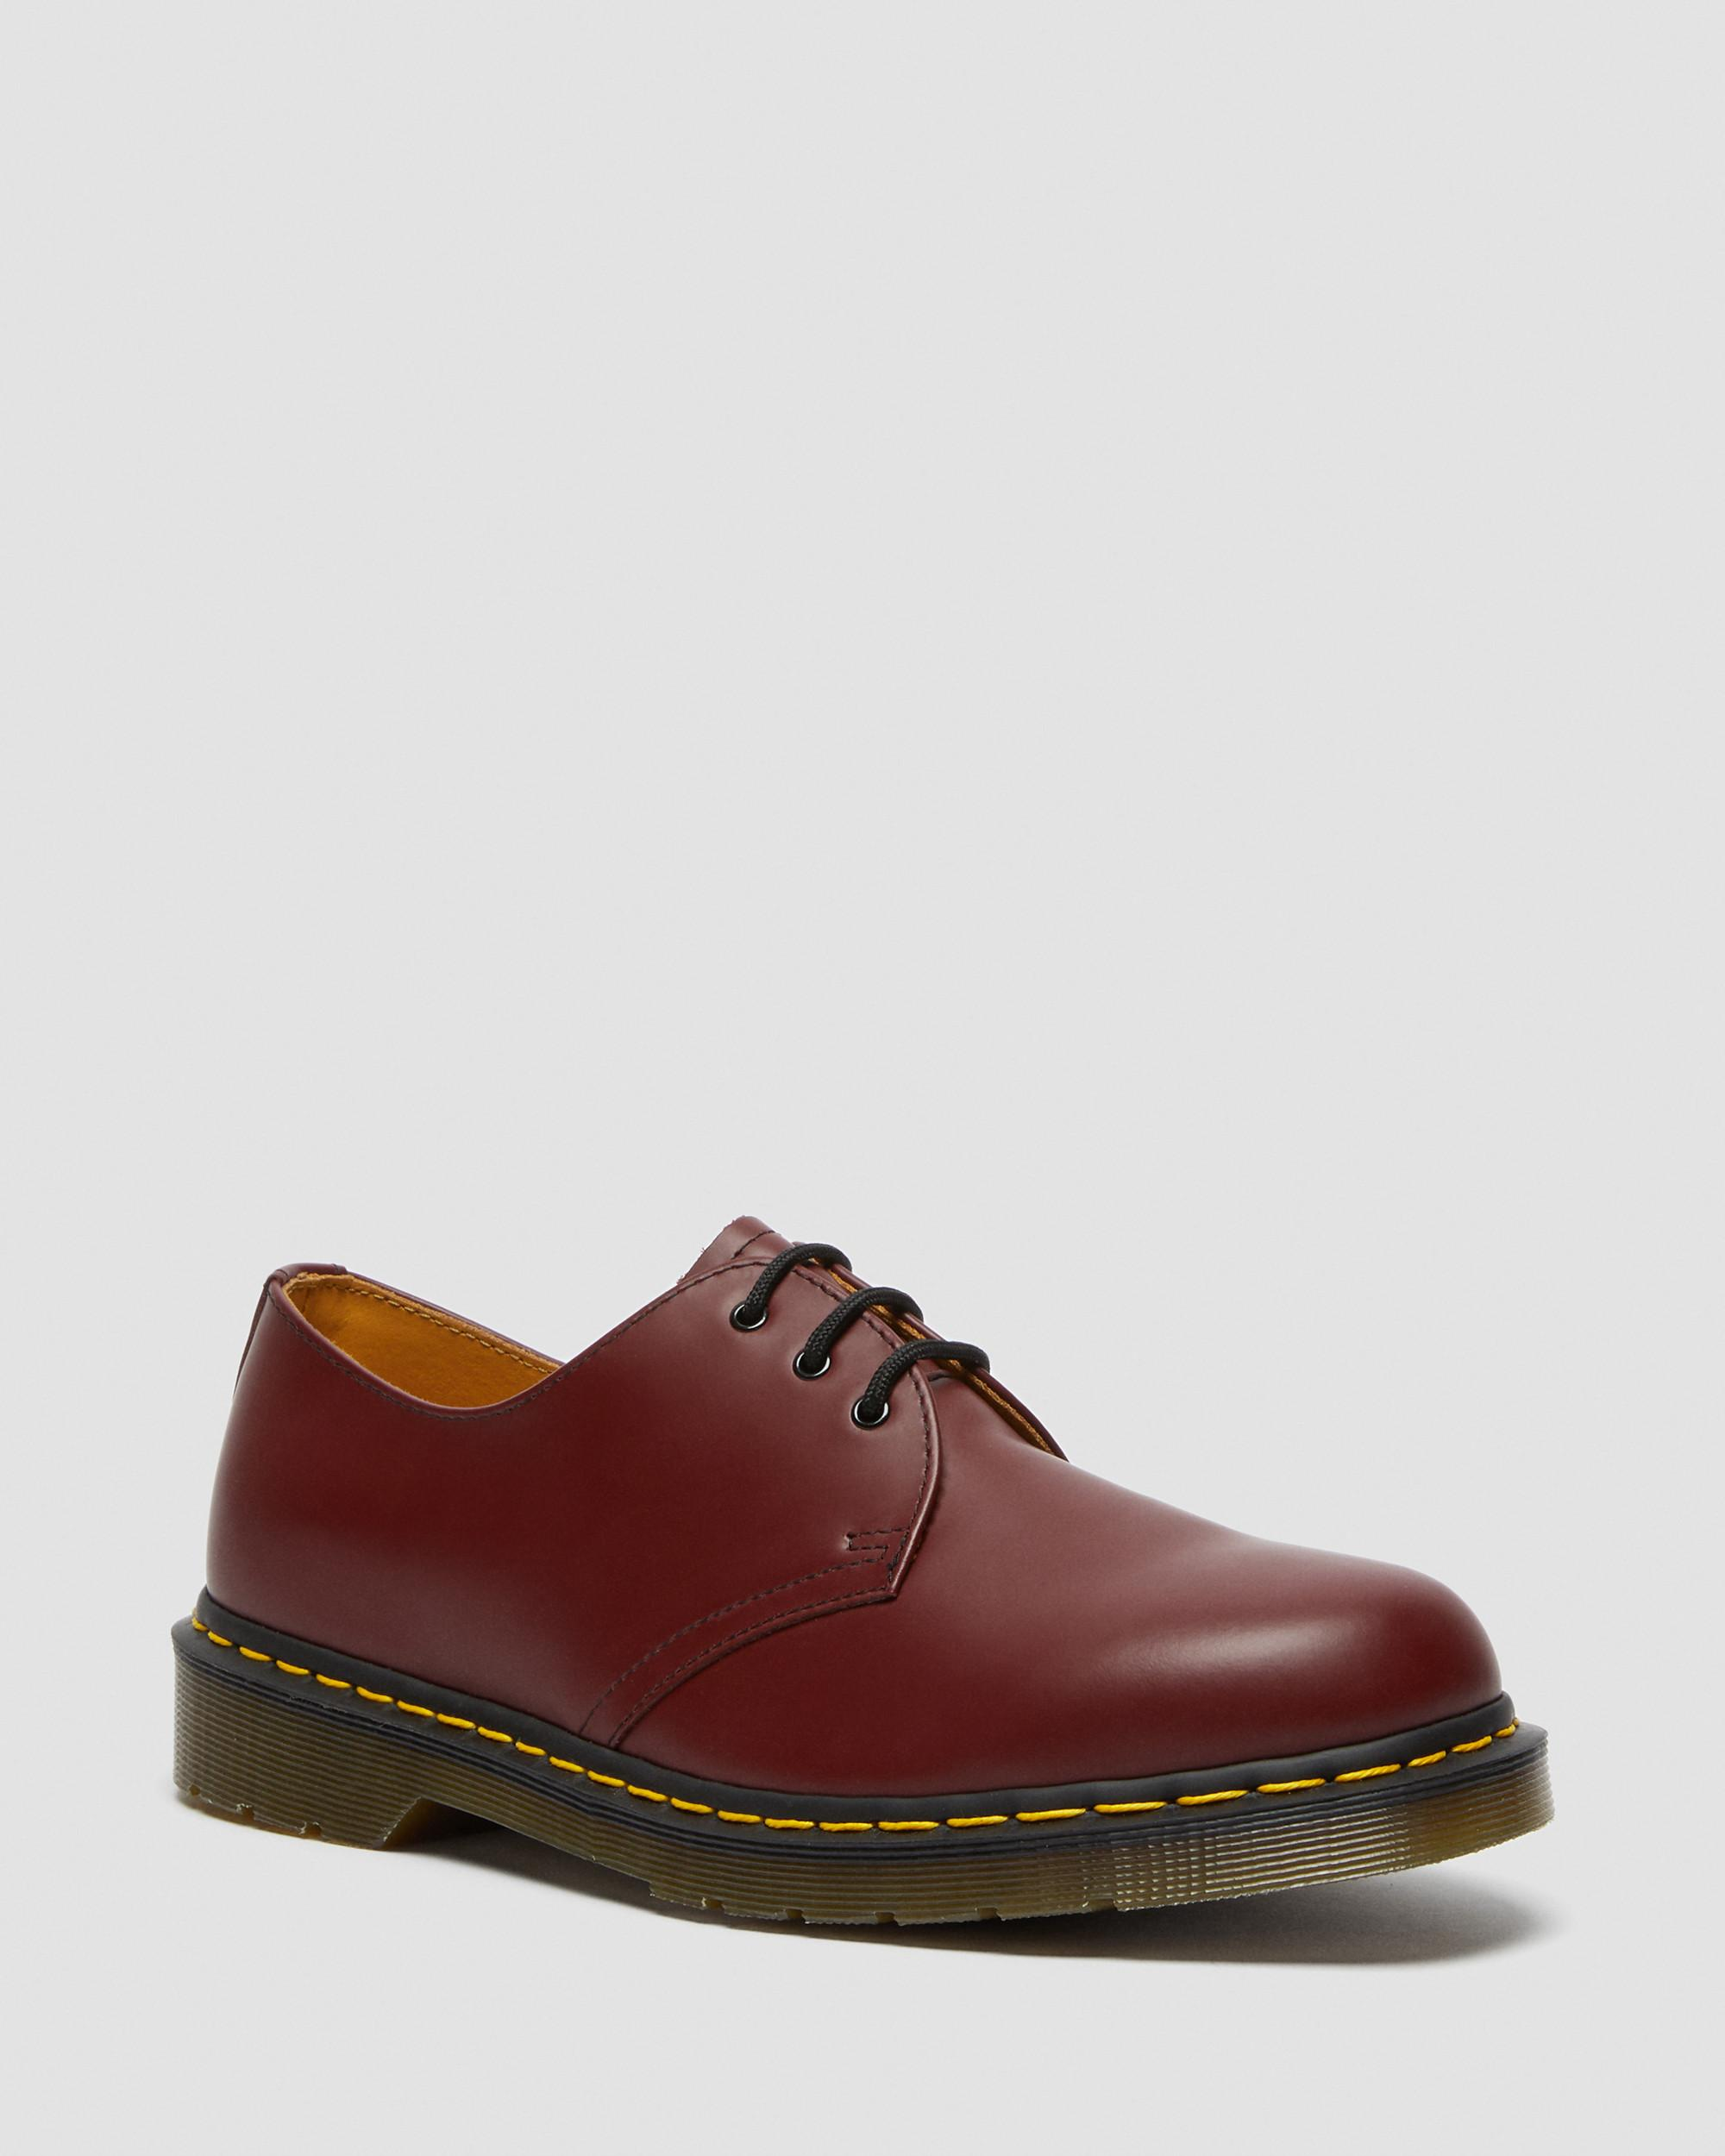 Dr. Martens Official | Boots, Shoes & Accessories